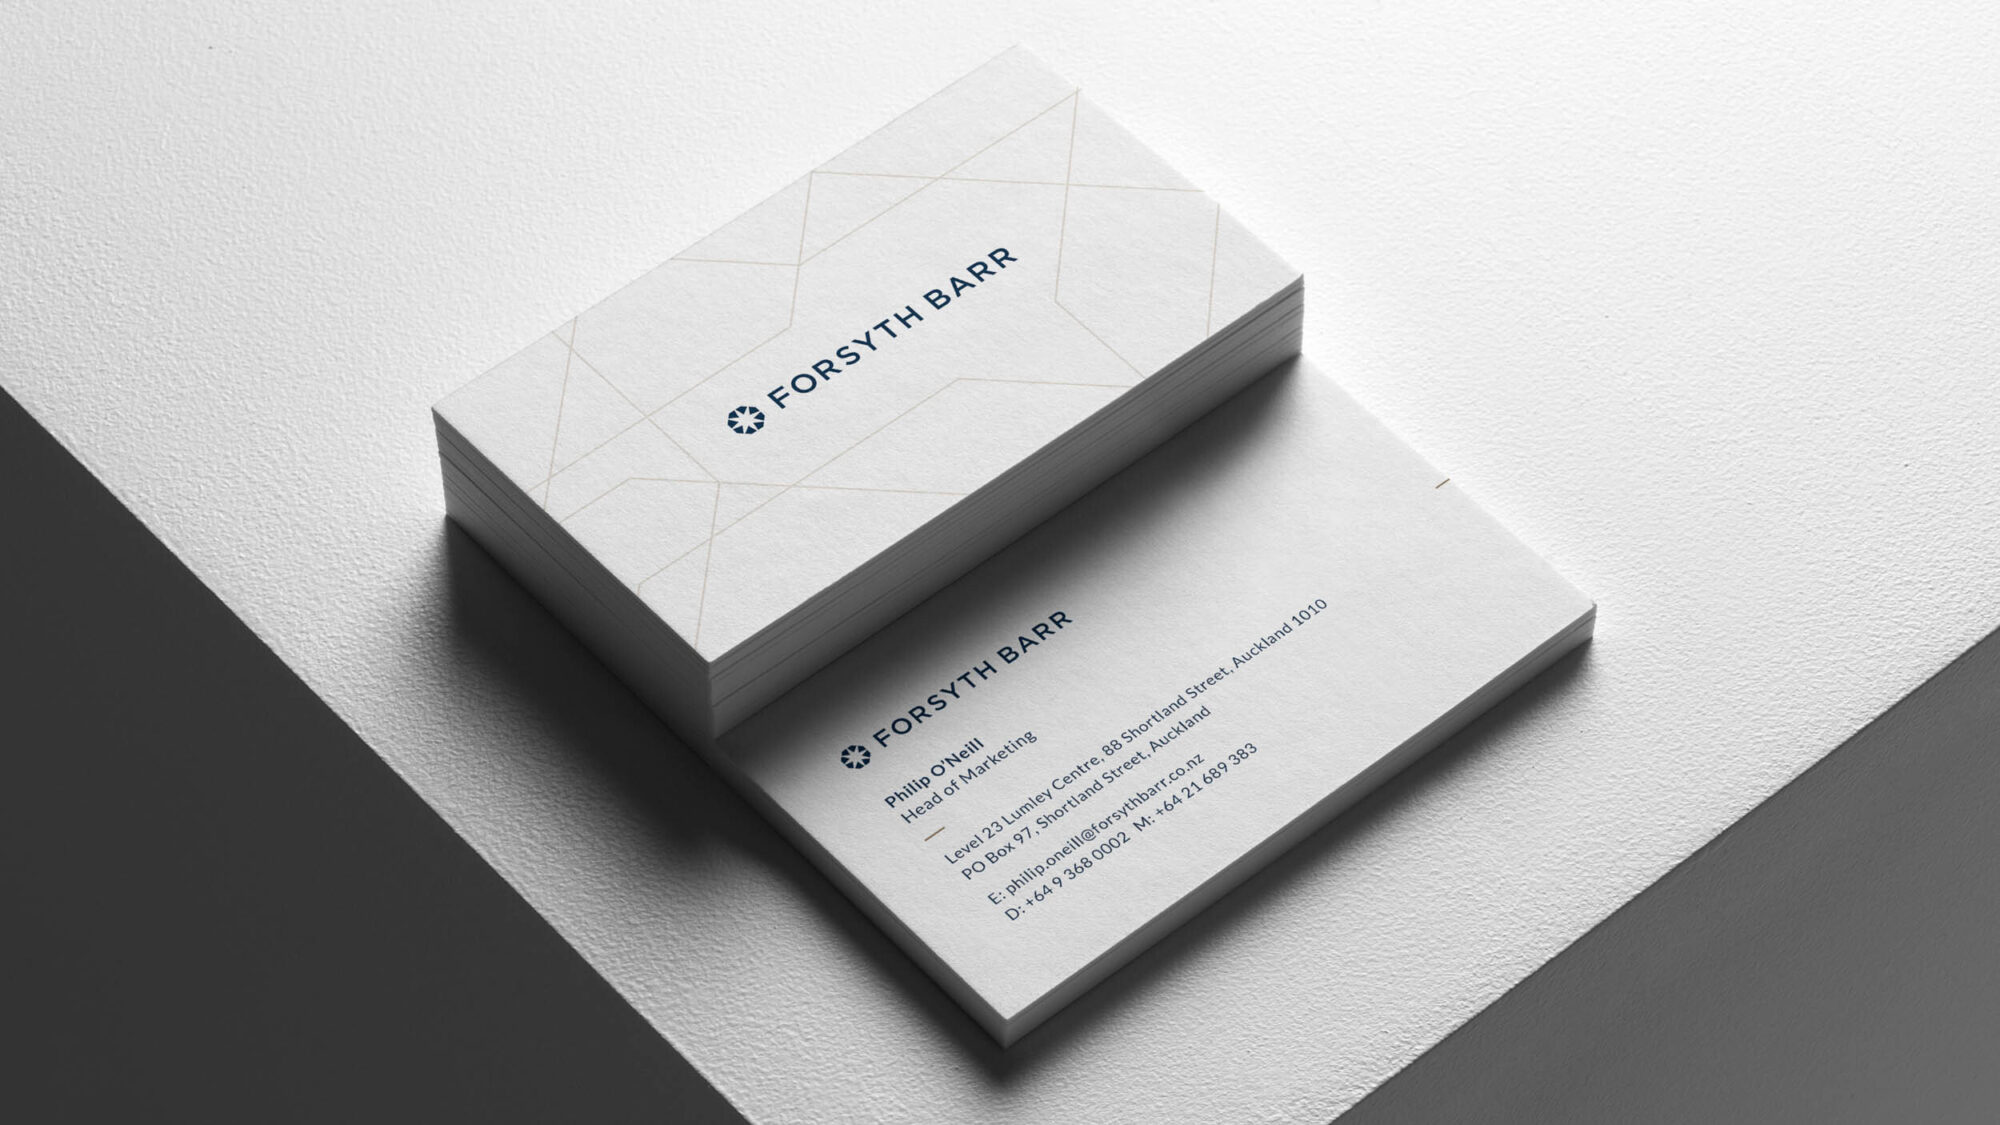 Forsyth Barr business card design